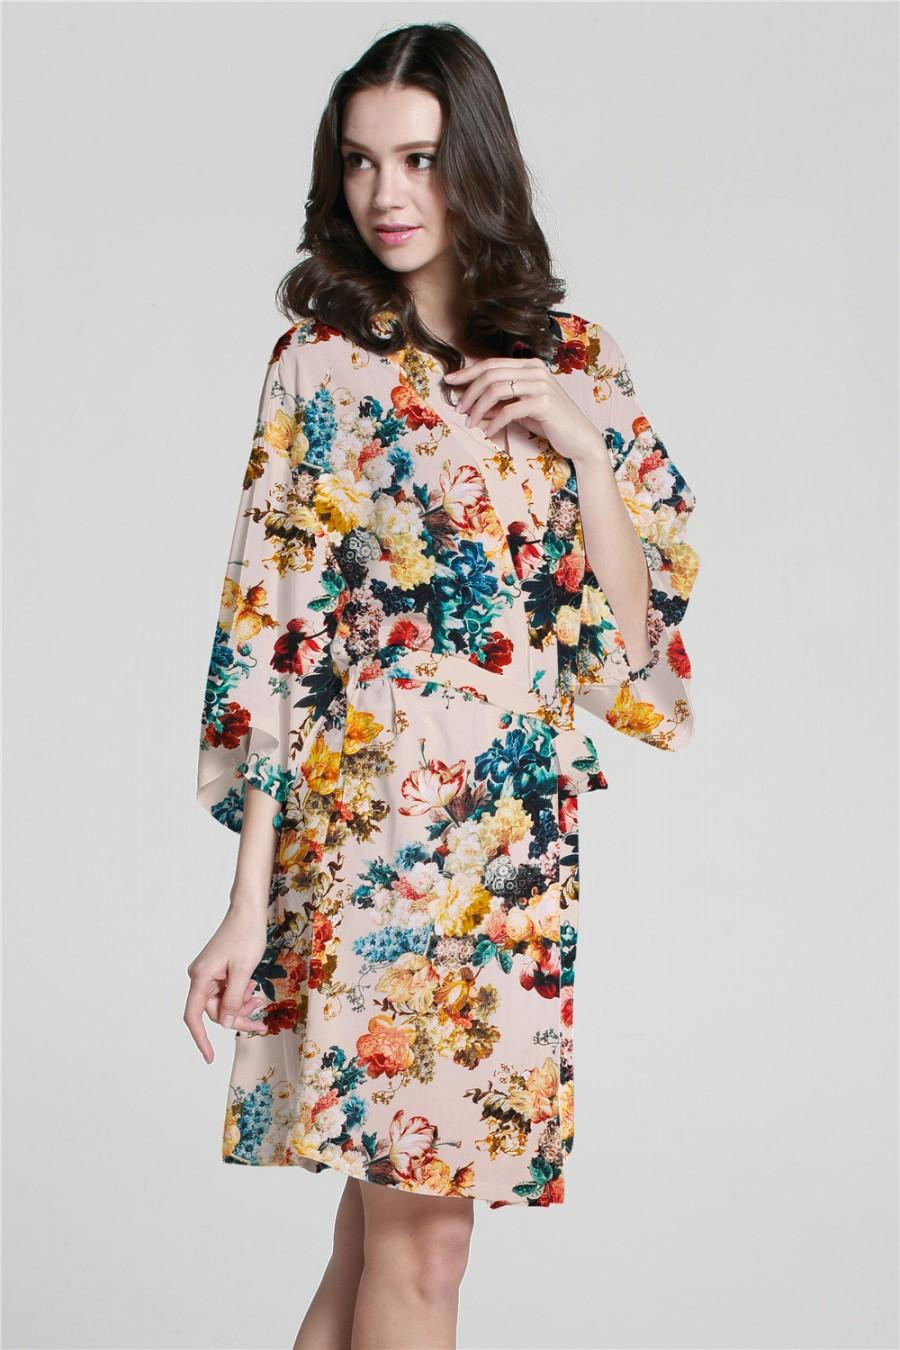 XF0001 Custom White Floral Kimono Robes For Wedding Party Gifts ...